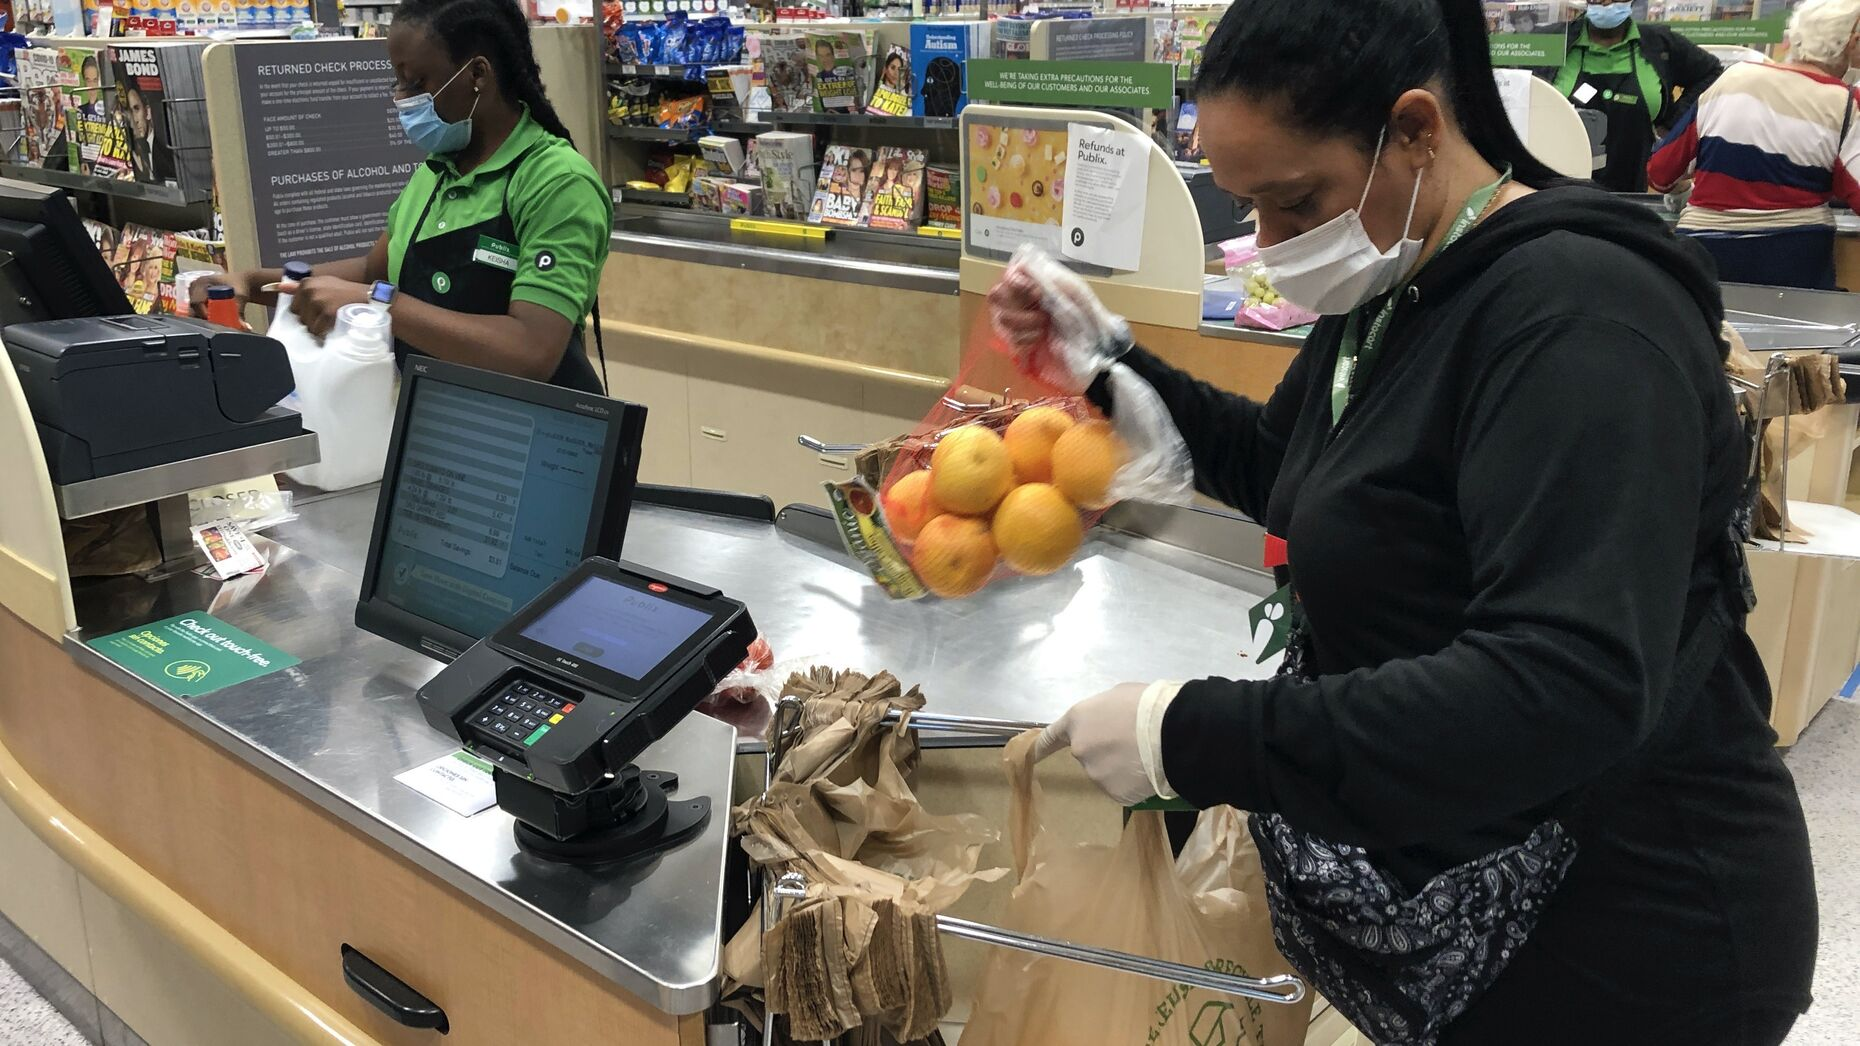 Yelitza Esteva, a contractor for Instacart, bagging groceries for an order in Florida this month. Photo by AP